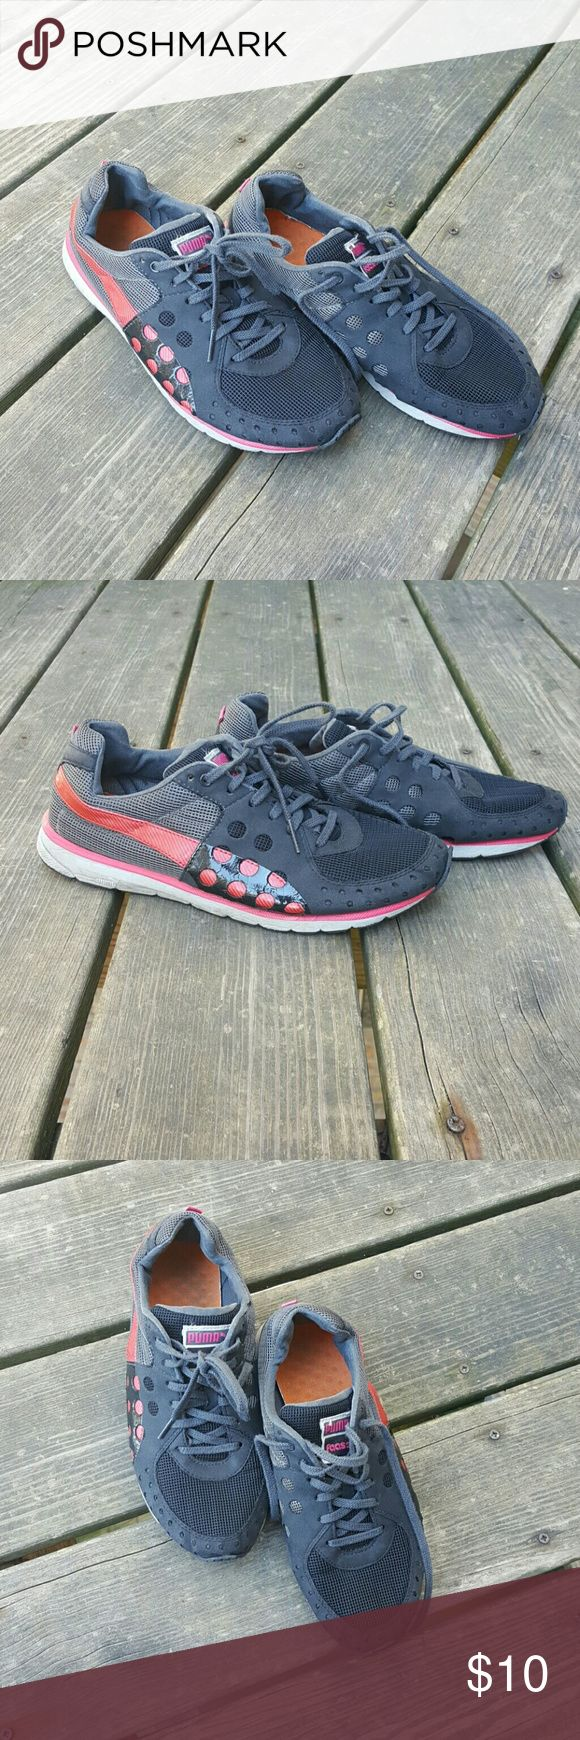 Sport shoes Puma sport shoes Black with dark pink and grey accents Very comfirtable Puma Shoes Sneakers